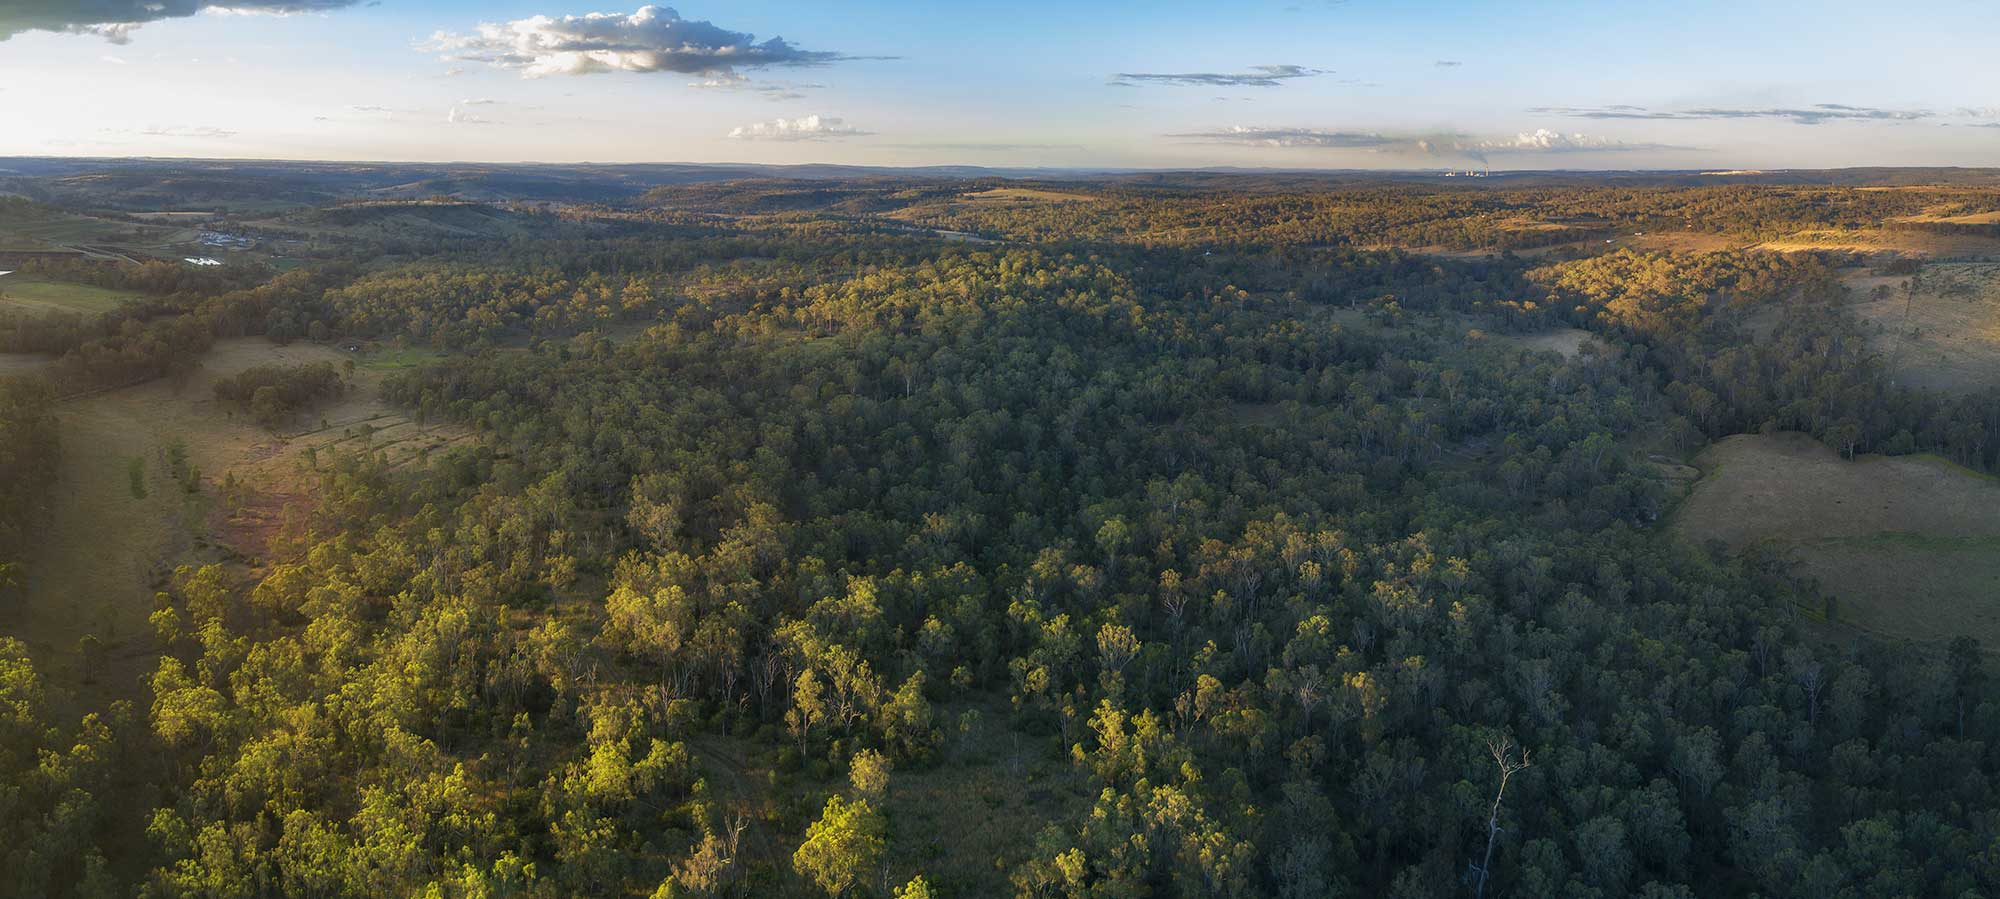 BunyipSprings Farmstay sunset drone panorama photography